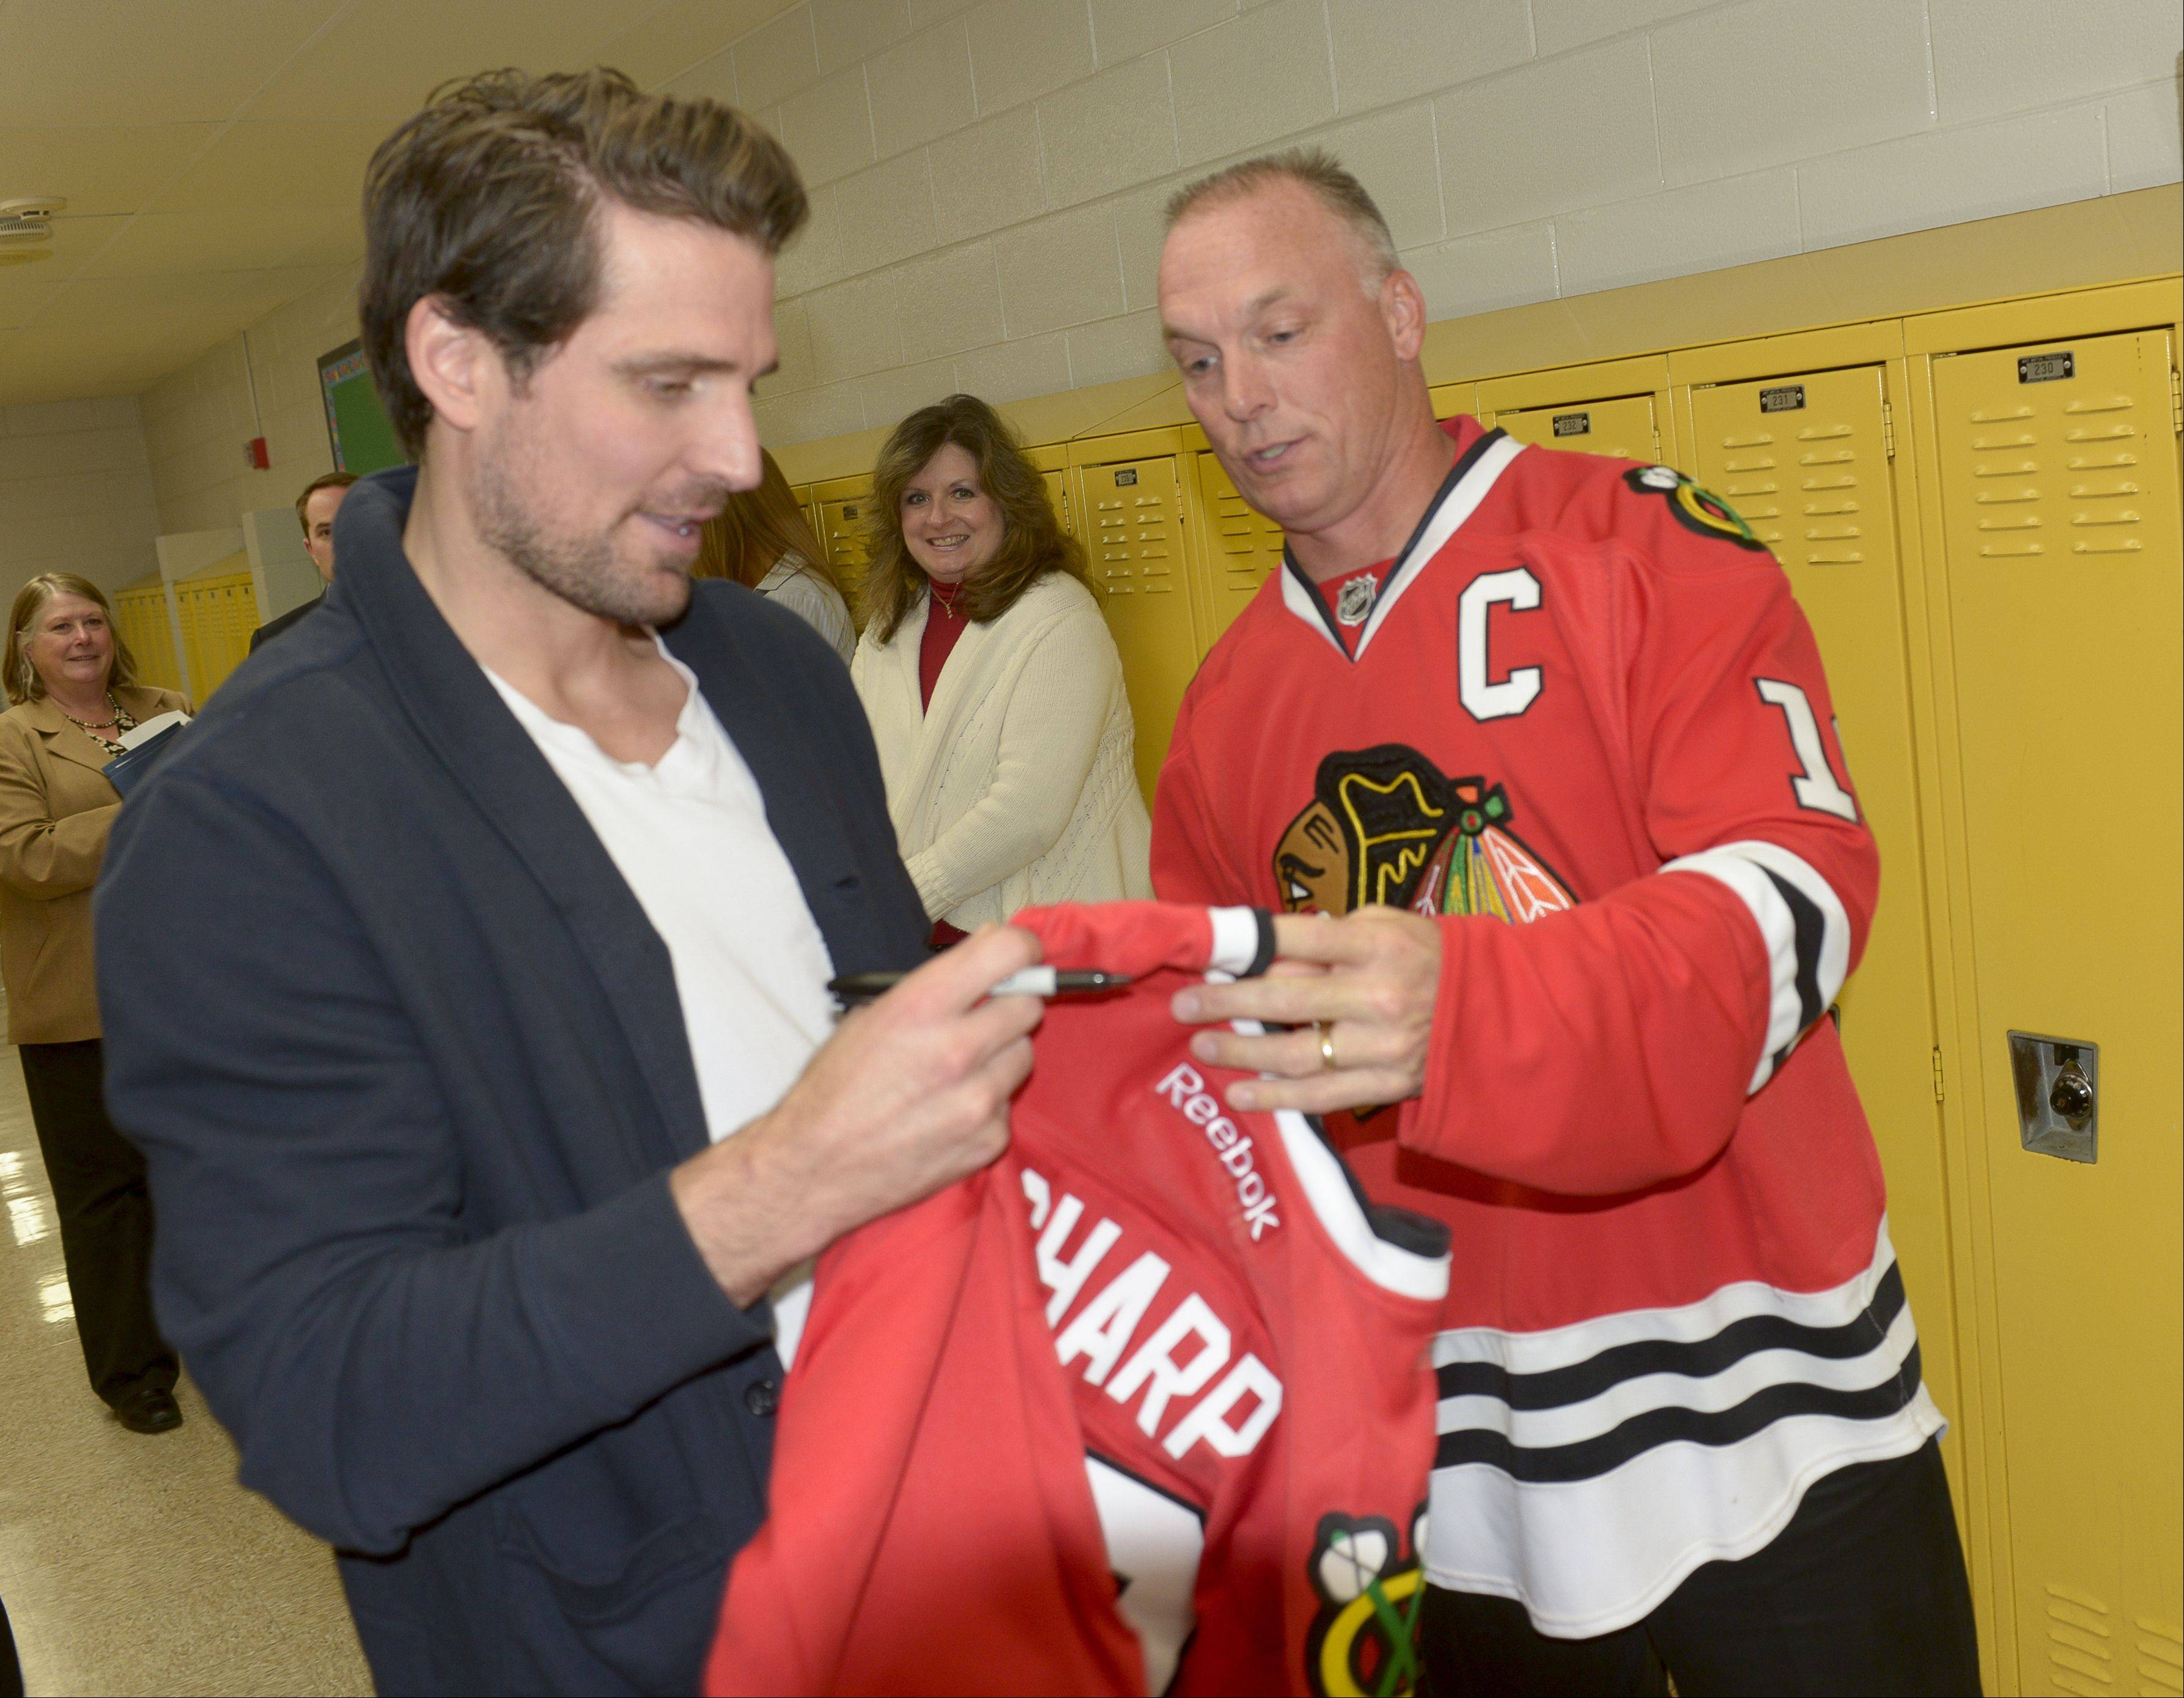 Technology teacher Pete Meyer has Patrick Sharp of the Chicago Blackhawks sign a jersey during Sharp's visit to Lisle Junior High School.